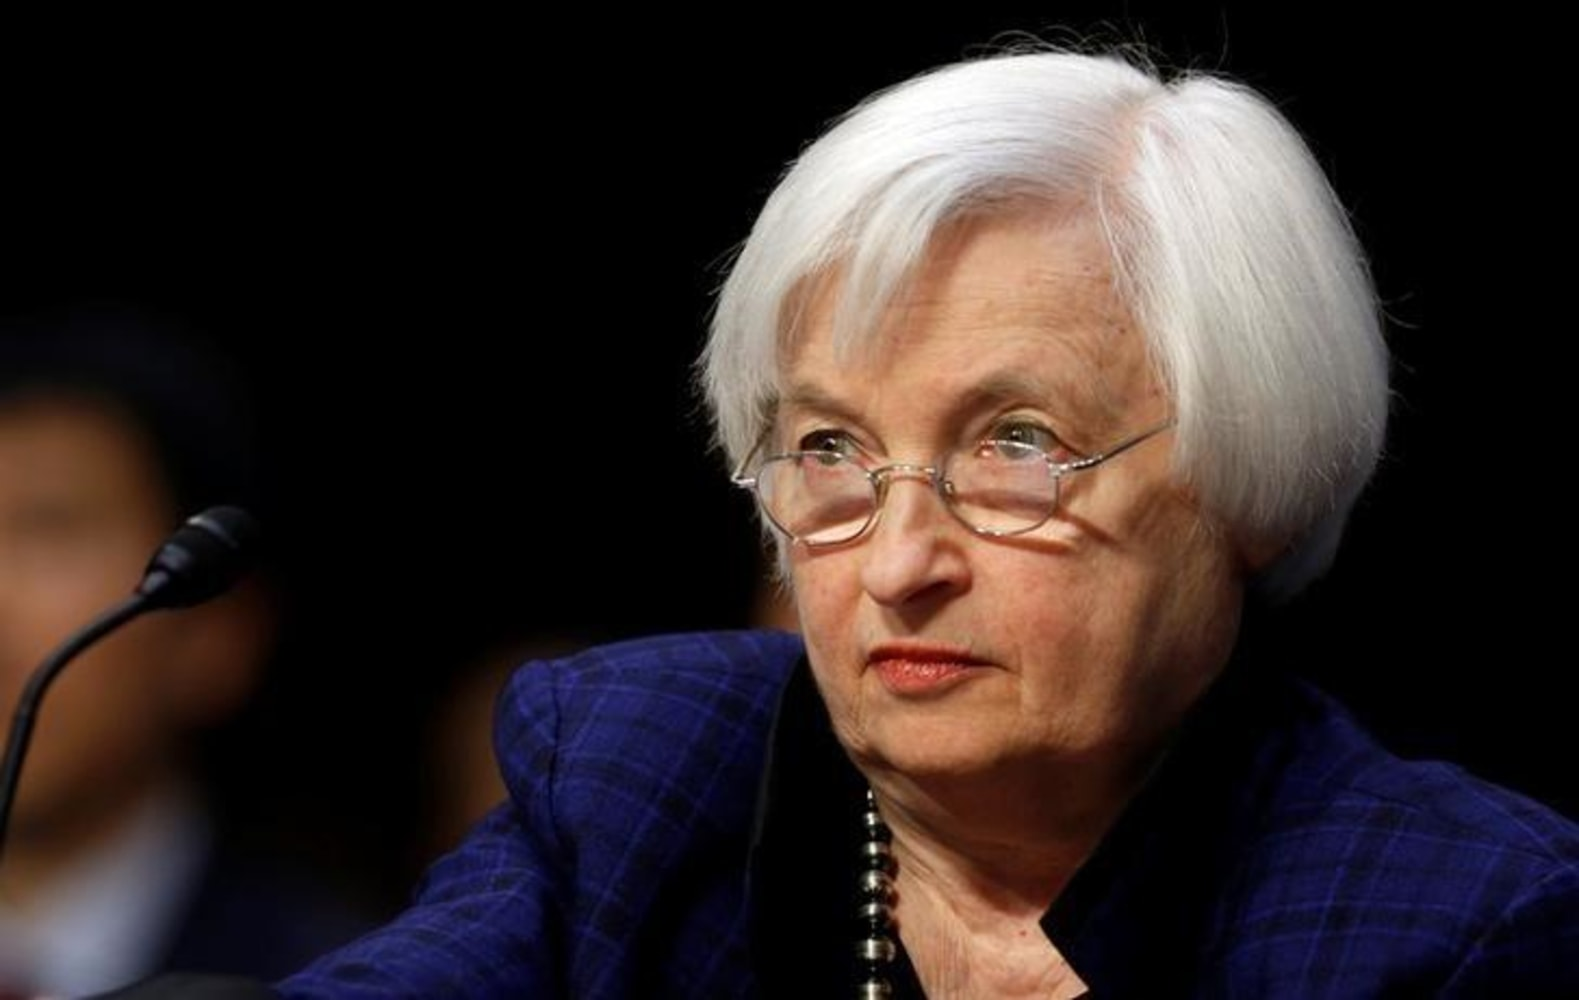 Bitcoin is a 'highly speculative asset — YELLEN